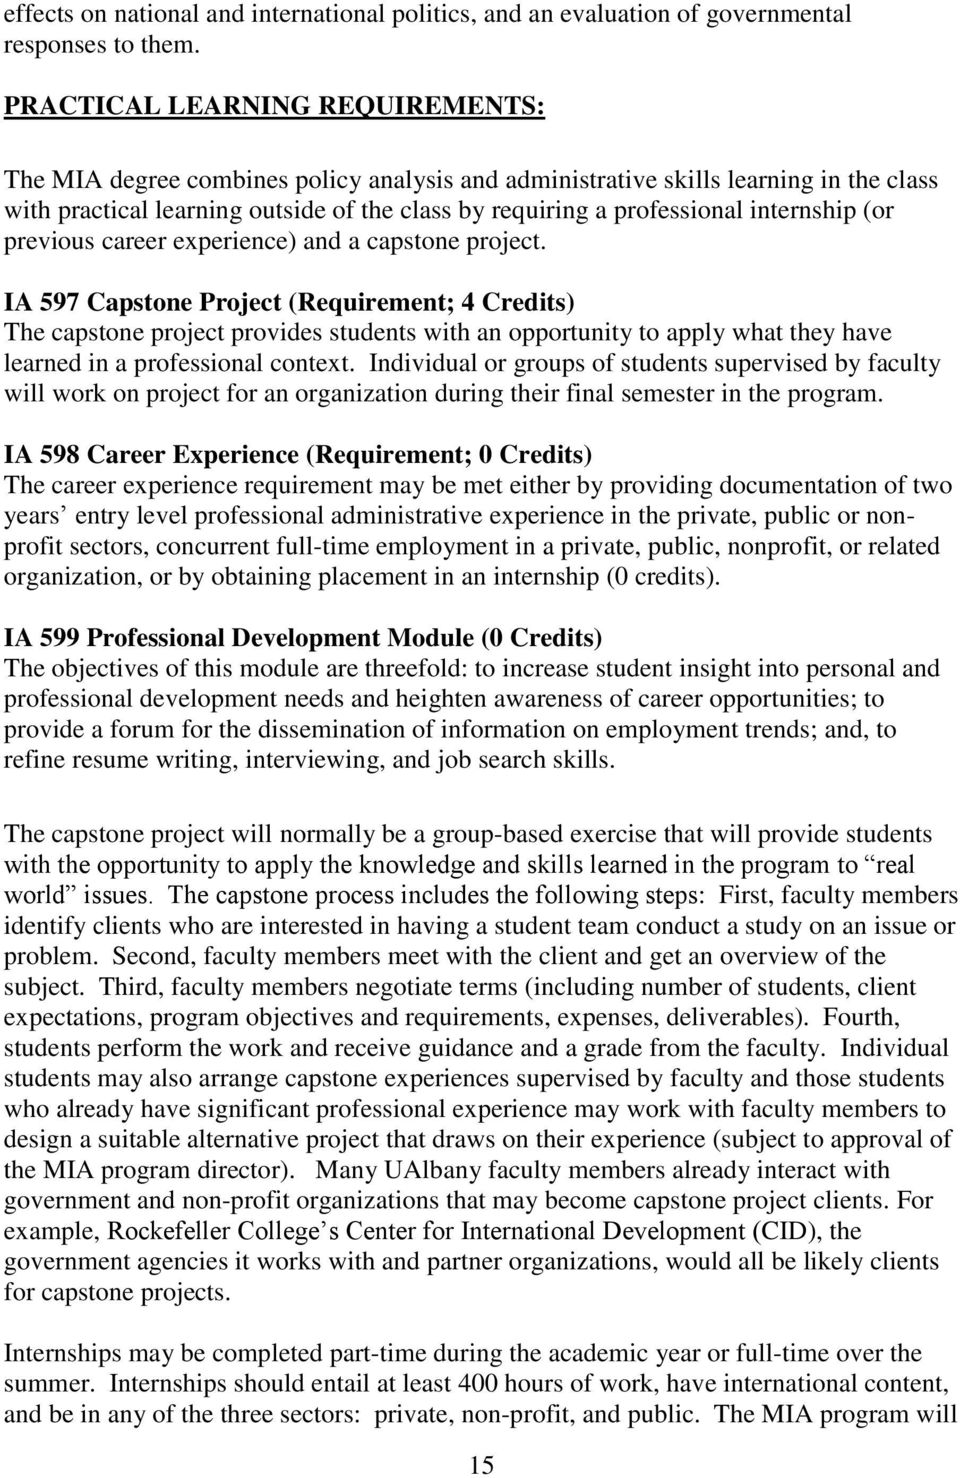 internship (or previous career experience) and a capstone project.